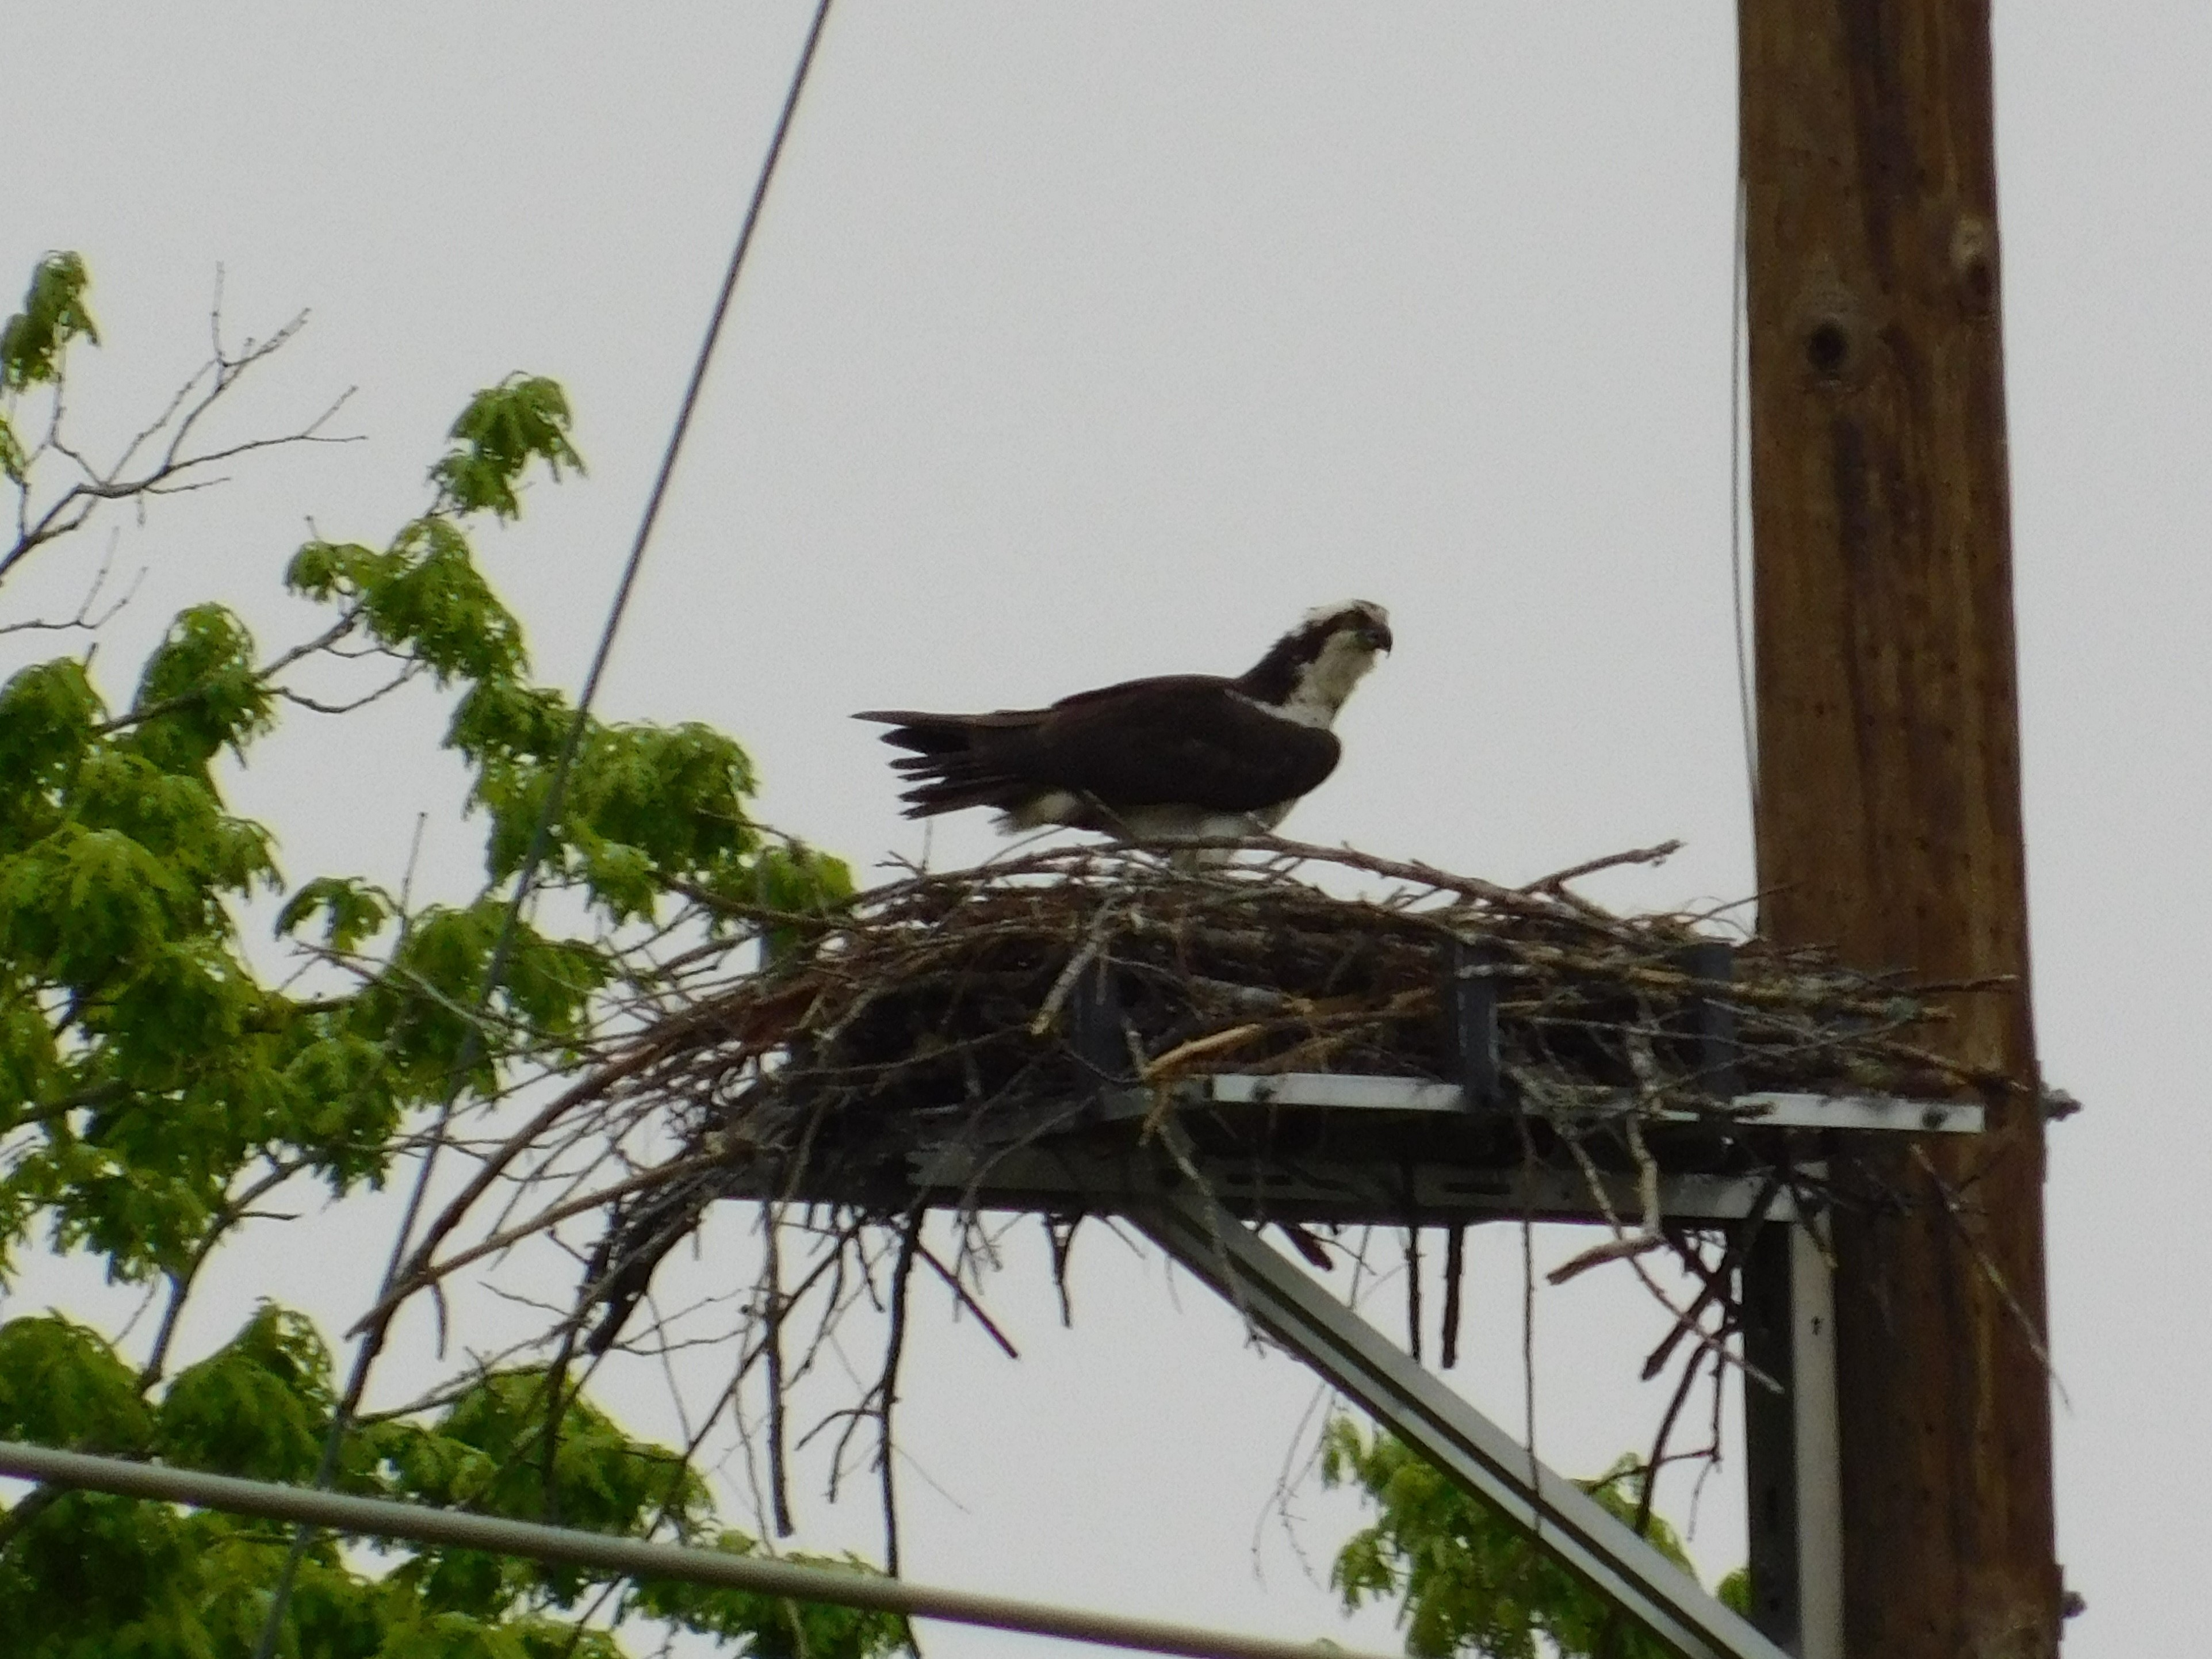 Osprey nesting on platform - wildlife protection for utilities